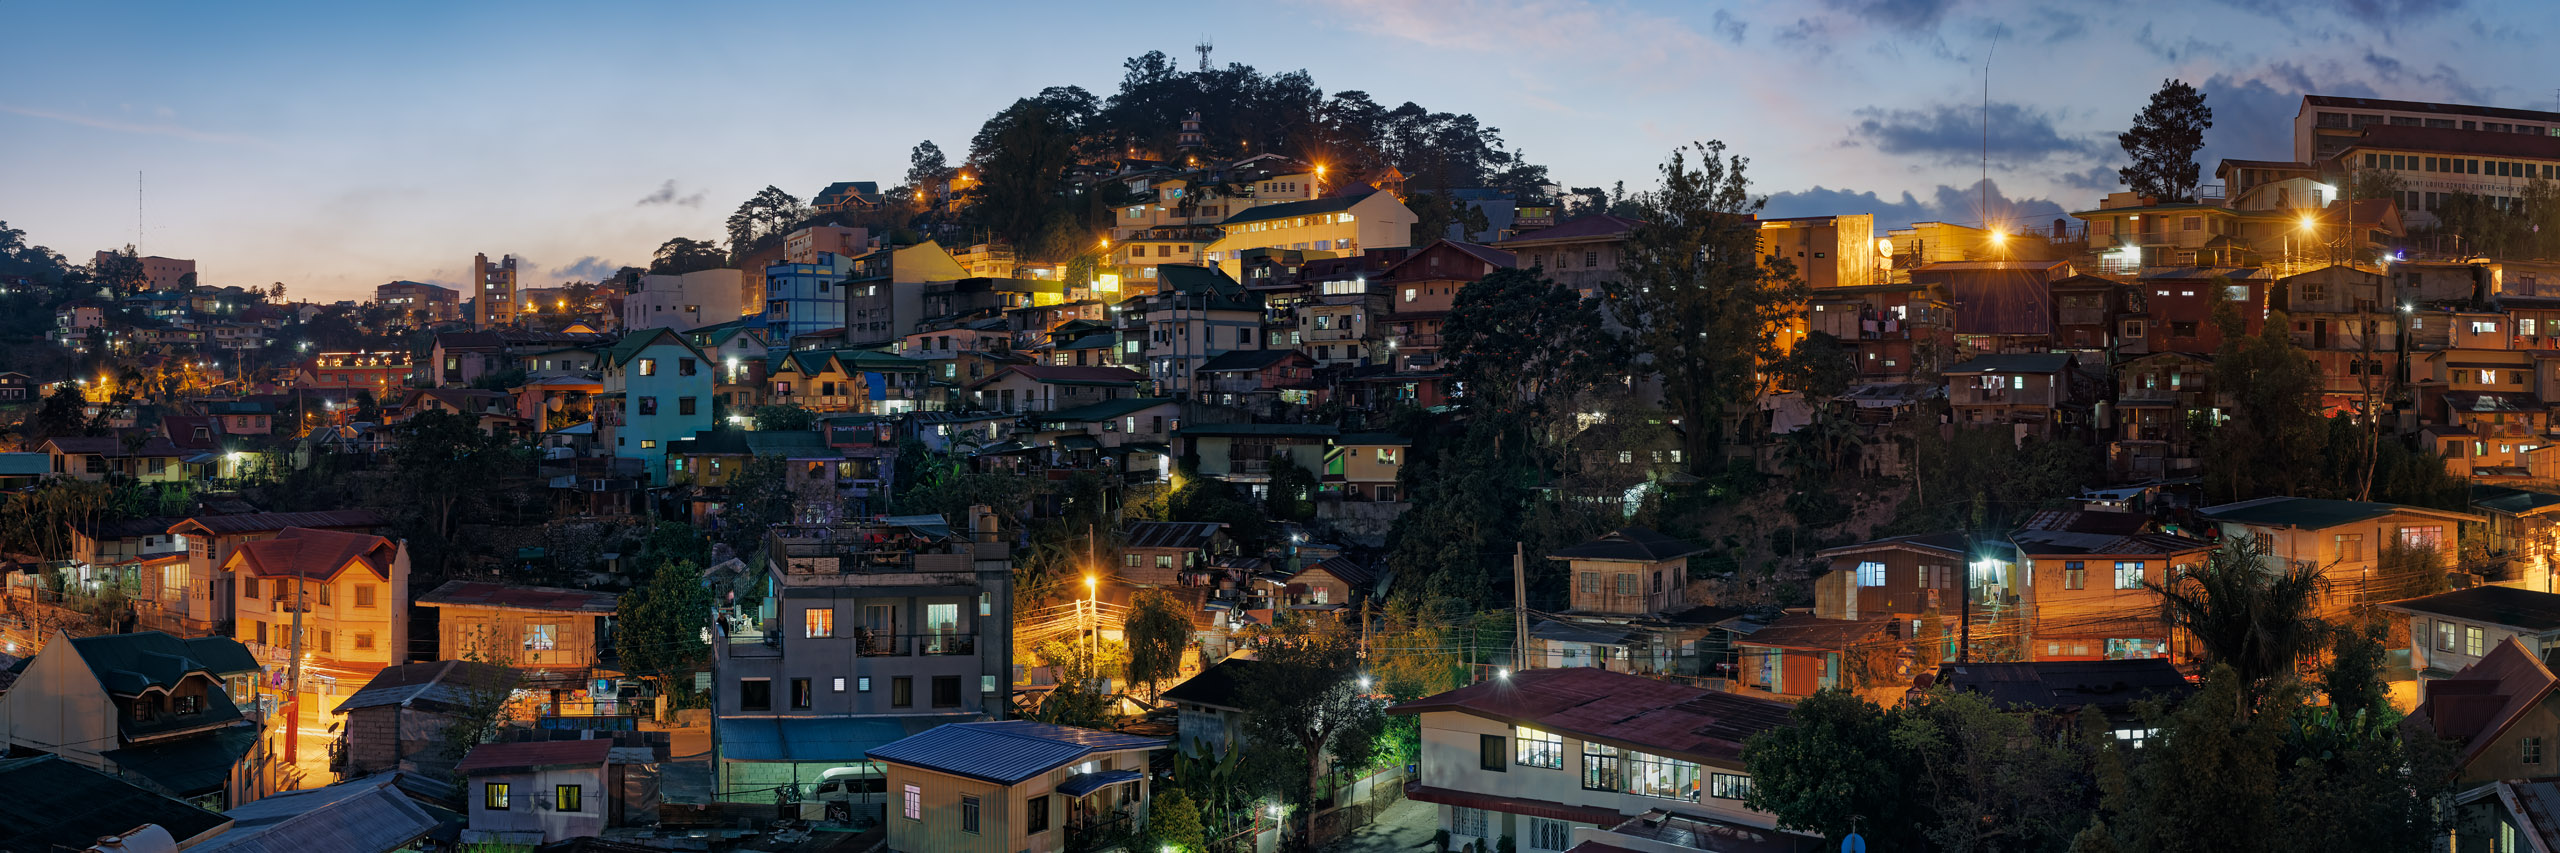 City of Baguio, Benguet, Summer Capital of the Philippines, night view 7